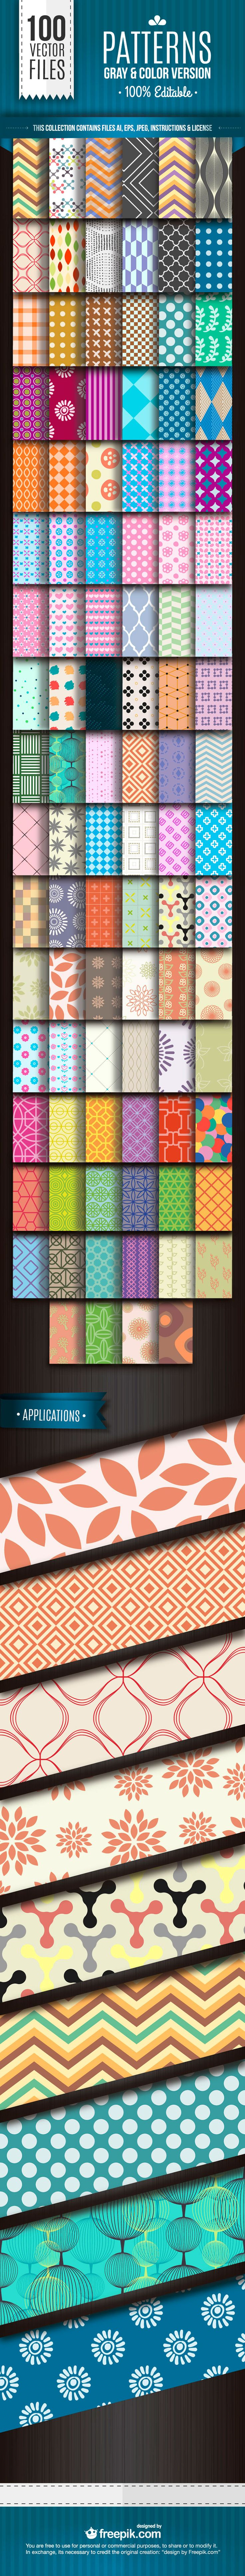 Free download: 100 repeating vector patterns from freepik.com | Webdesigner Depot